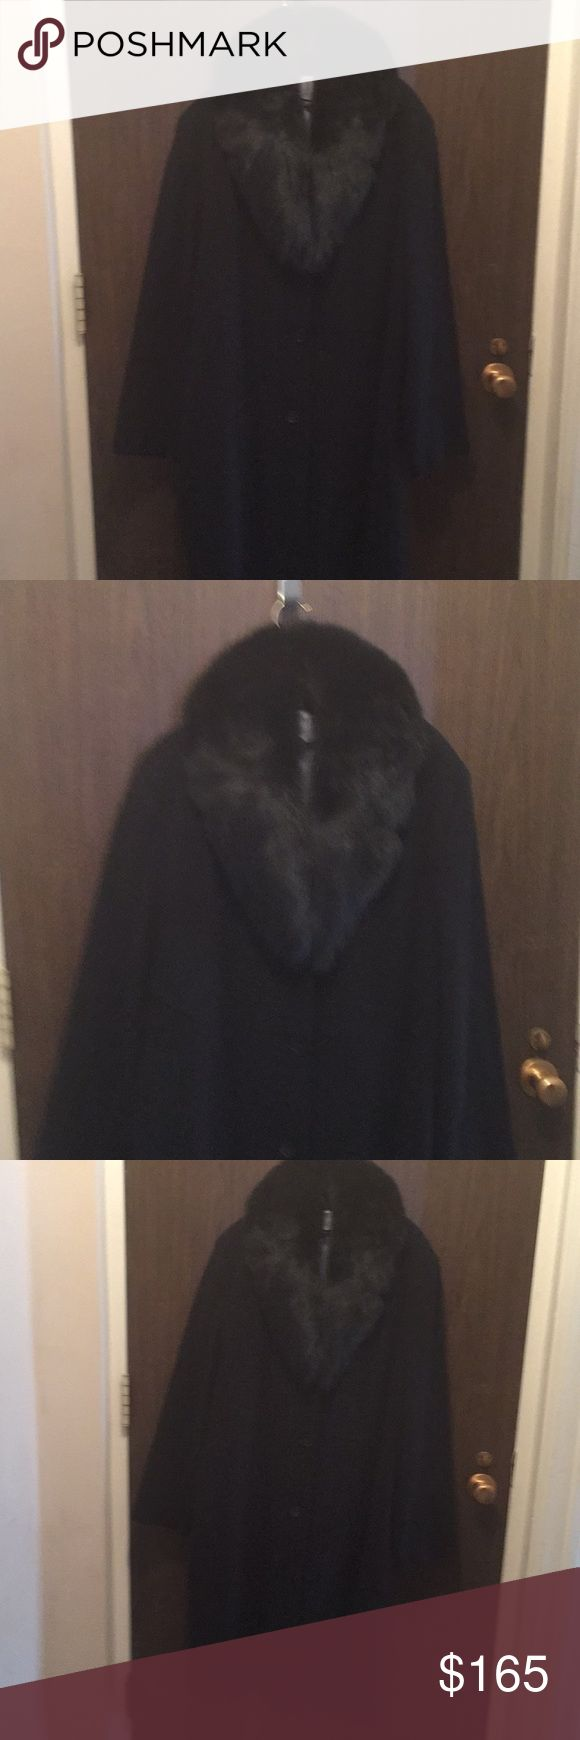 ANDREW MARC REAL FUR COLLAR BLACK COAT NEVER WORE Has fabric content listed in photos. Big beautiful blue fox real fur collar that you can take off if you prefer. Three black buttons open and close the front. Has a grey or silver grey satin lining no pleat or vent in the back . It been hanging in my closet I never wore it just tried on. Never been worn. MARC NEWYORK by Andrew Marc Jackets & Coats